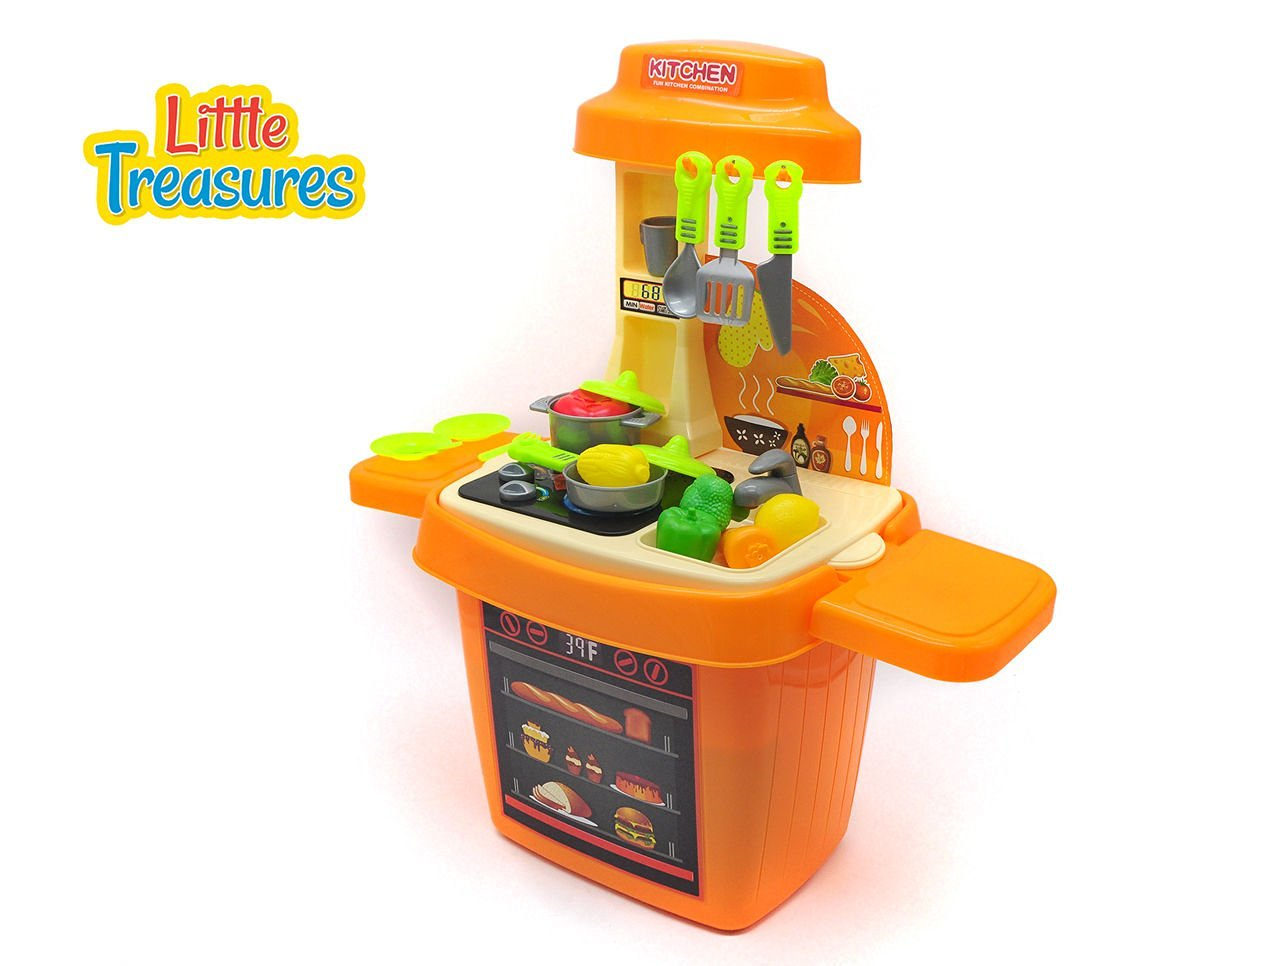 Little Treasures Kitchen set – consists of 27 pieces for kids age 3+, a large kitchen stand made up of an oven, movable knobs, hanging hooks, washing sink, several vessels and vegetable toy models